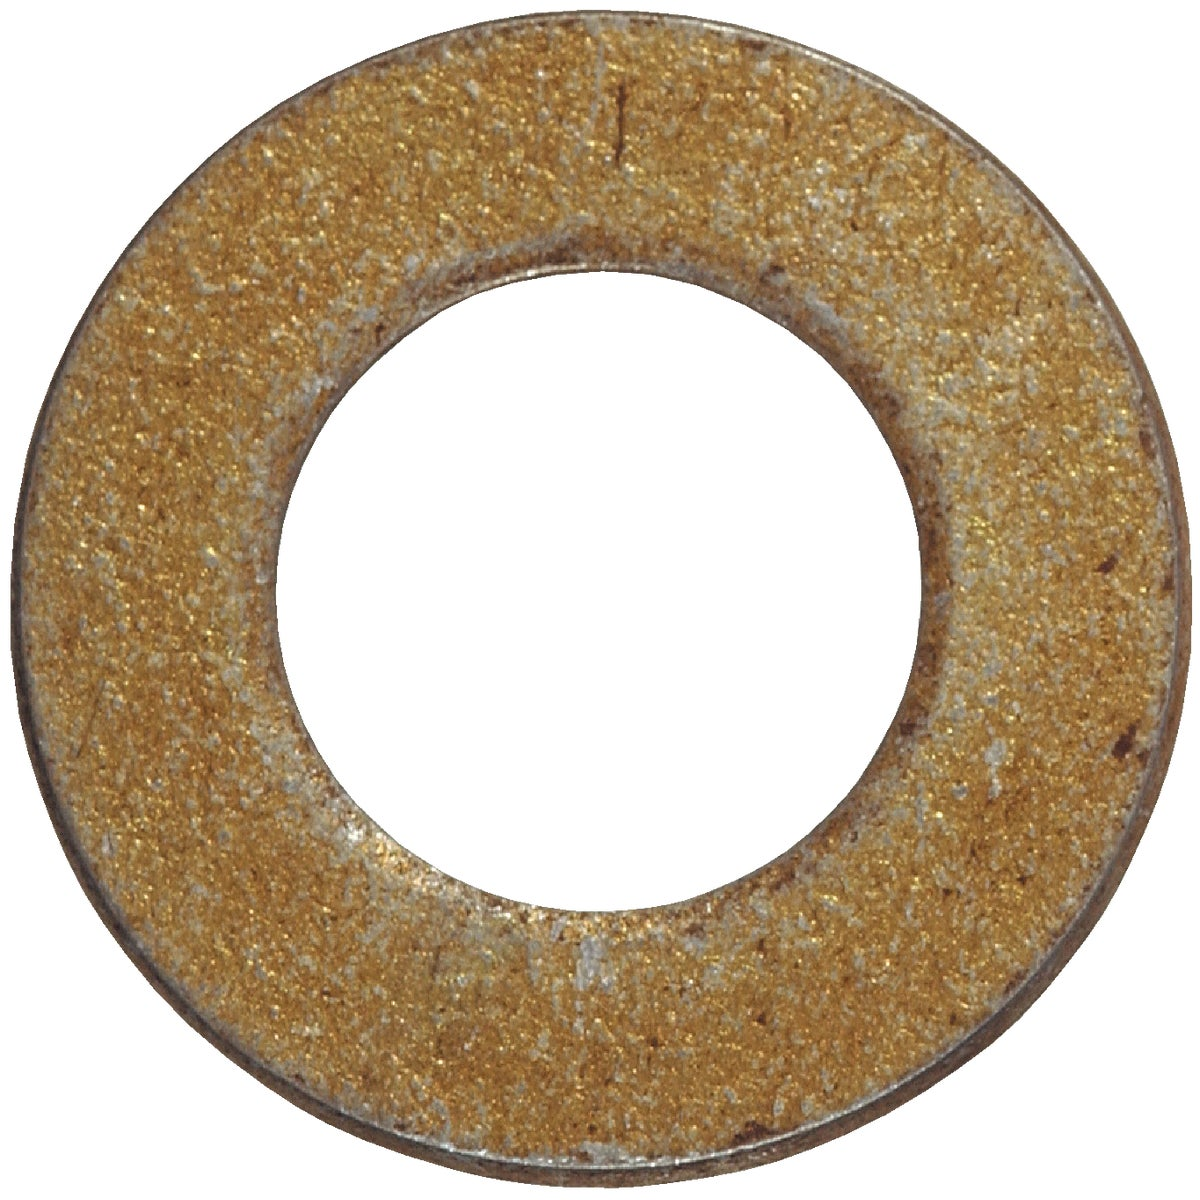 "1/2"" SAE FLAT WASHER"